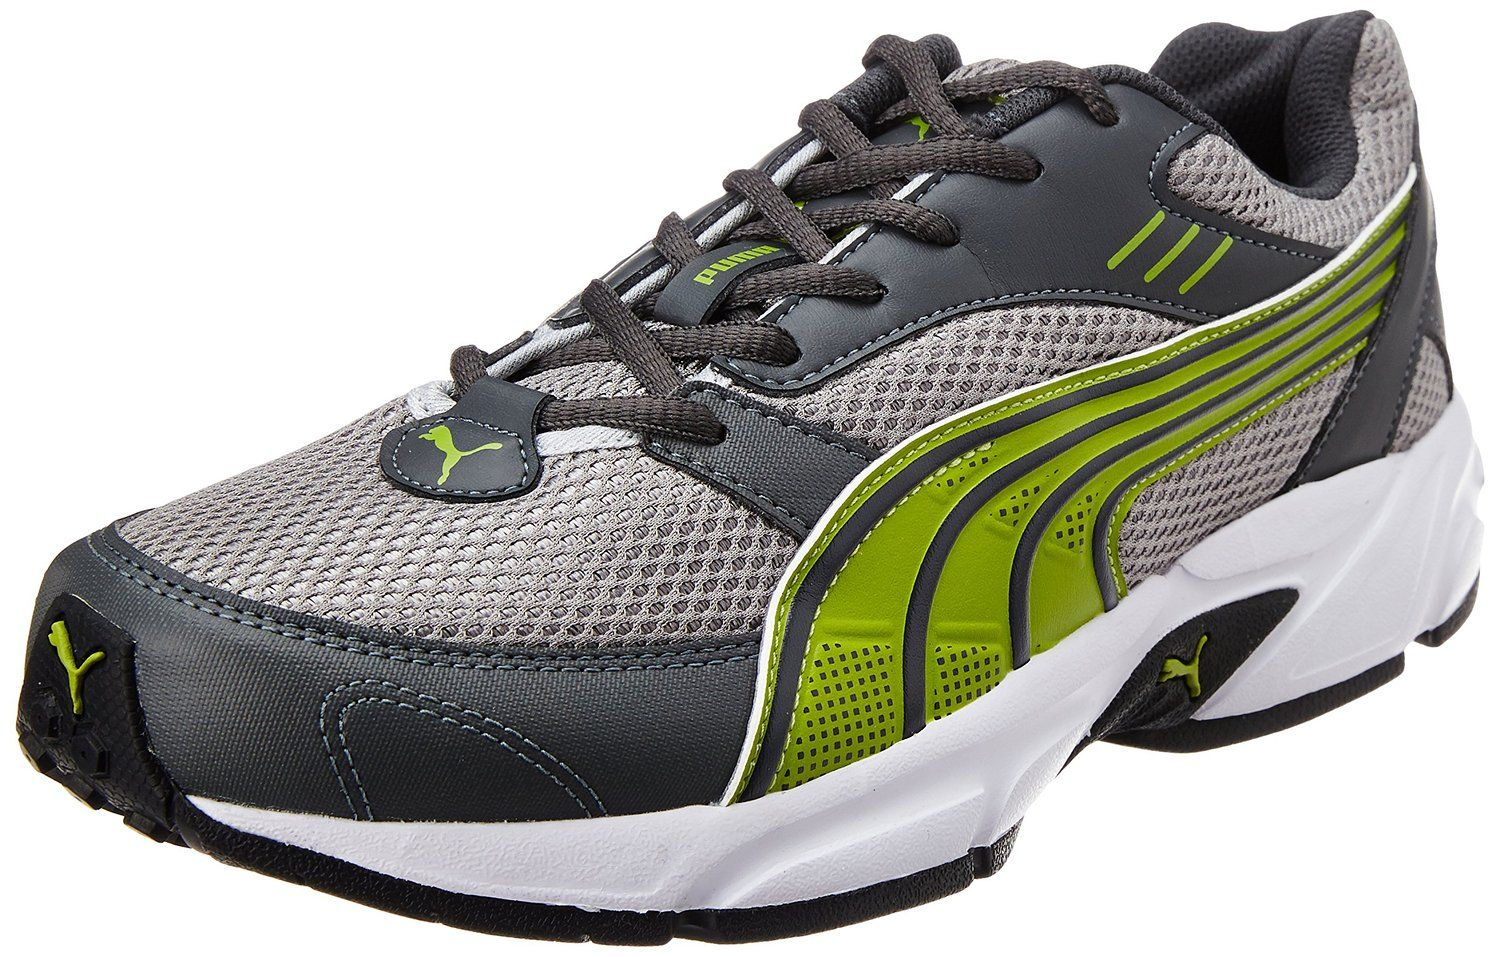 Puma Men S Black Silver Green Gecko And White Running Shoes 8